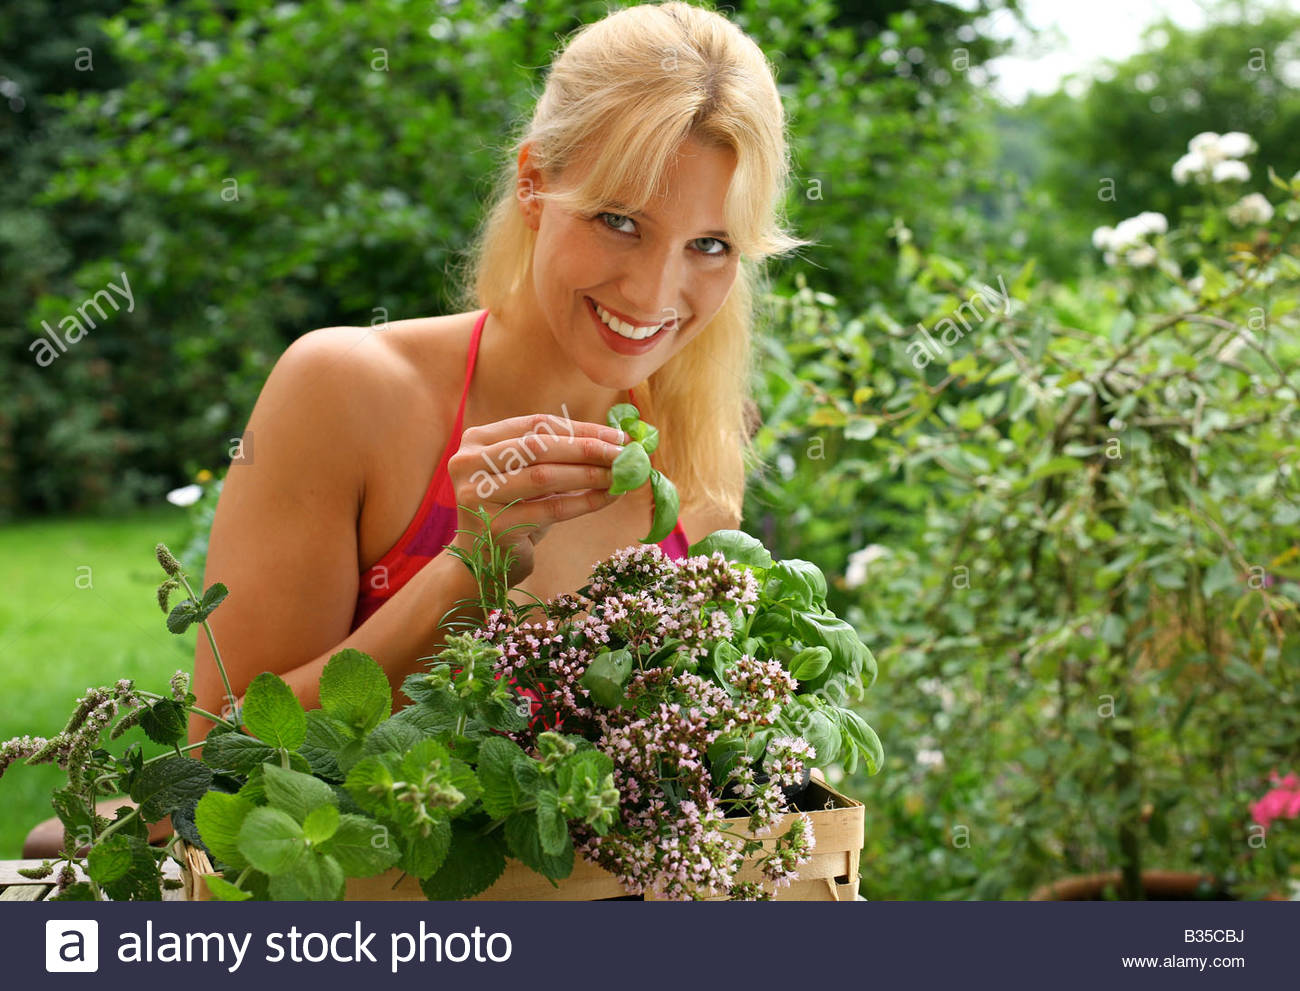 young blond woman picking herbs in the garden Stock Photo